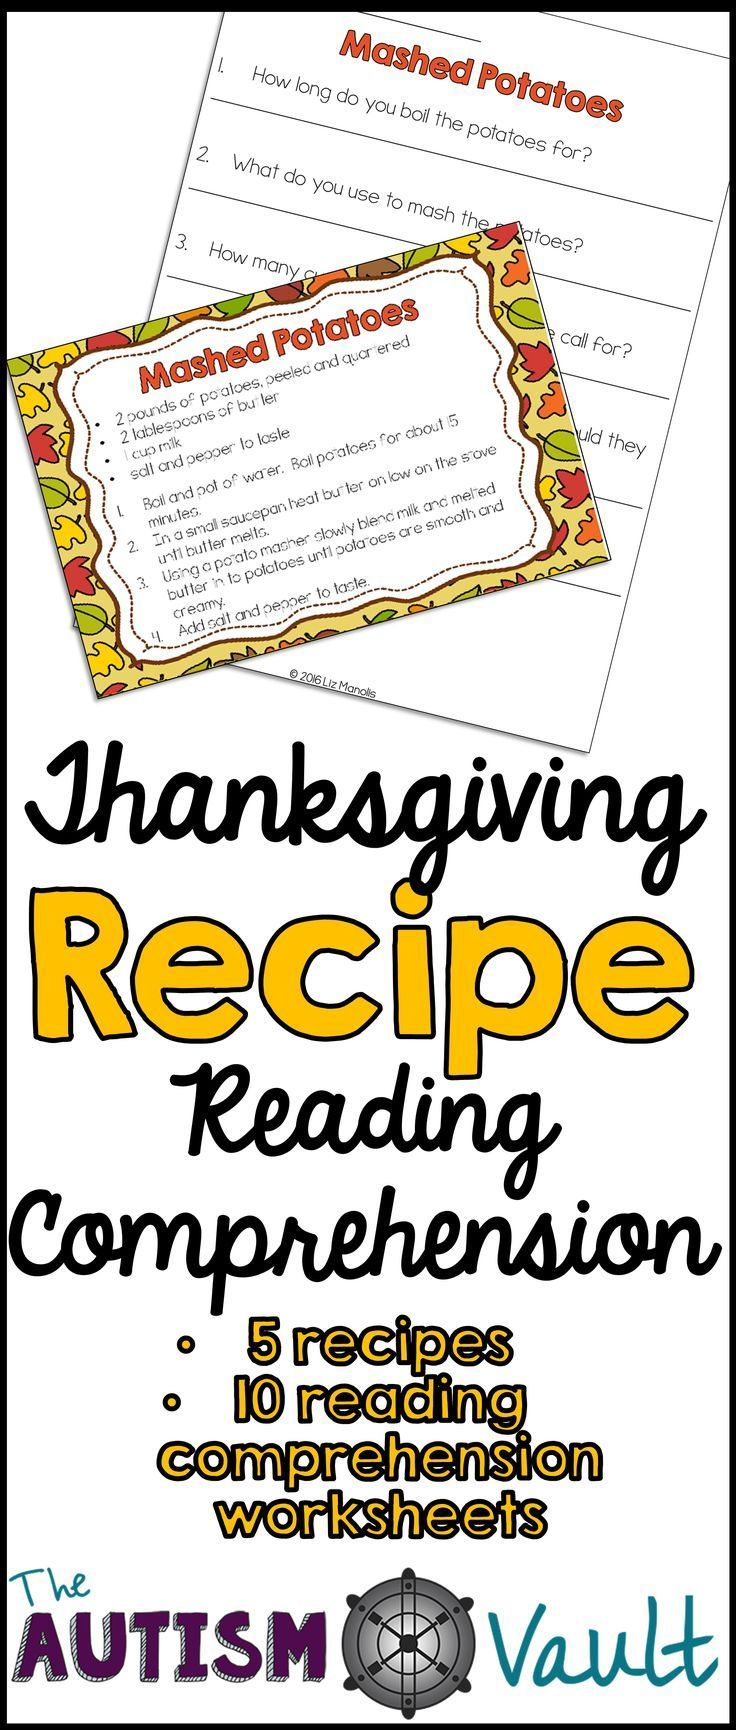 worksheet Functional Reading Comprehension Worksheets thanksgiving recipe reading comprehension functional literacy target and life skills all in one with this resource